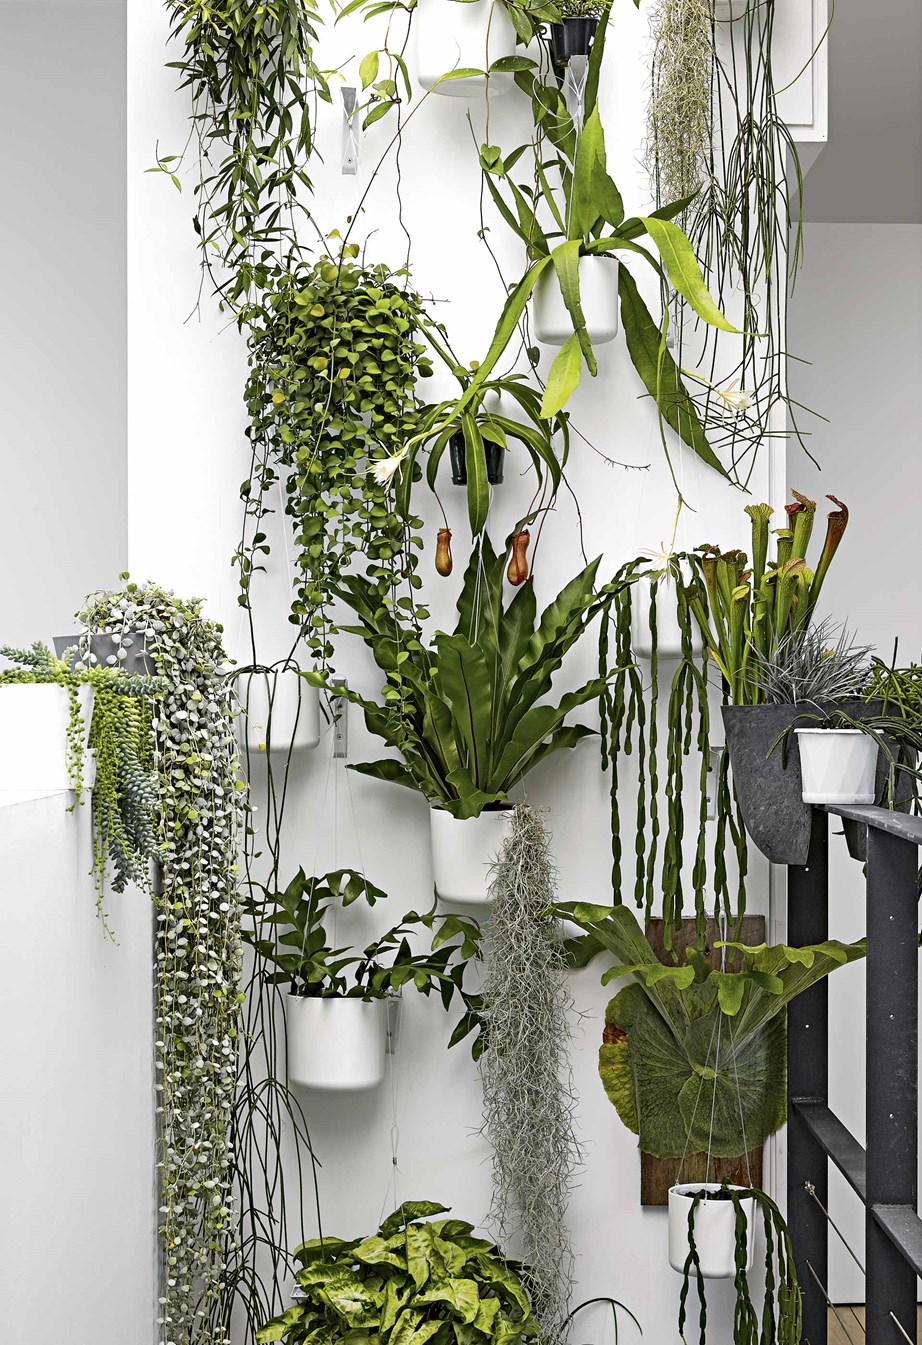 """**Vertical gardens:** Aside from being totally trendy, a [vertical garden](https://www.homestolove.com.au/your-guide-to-vertical-gardens-3021